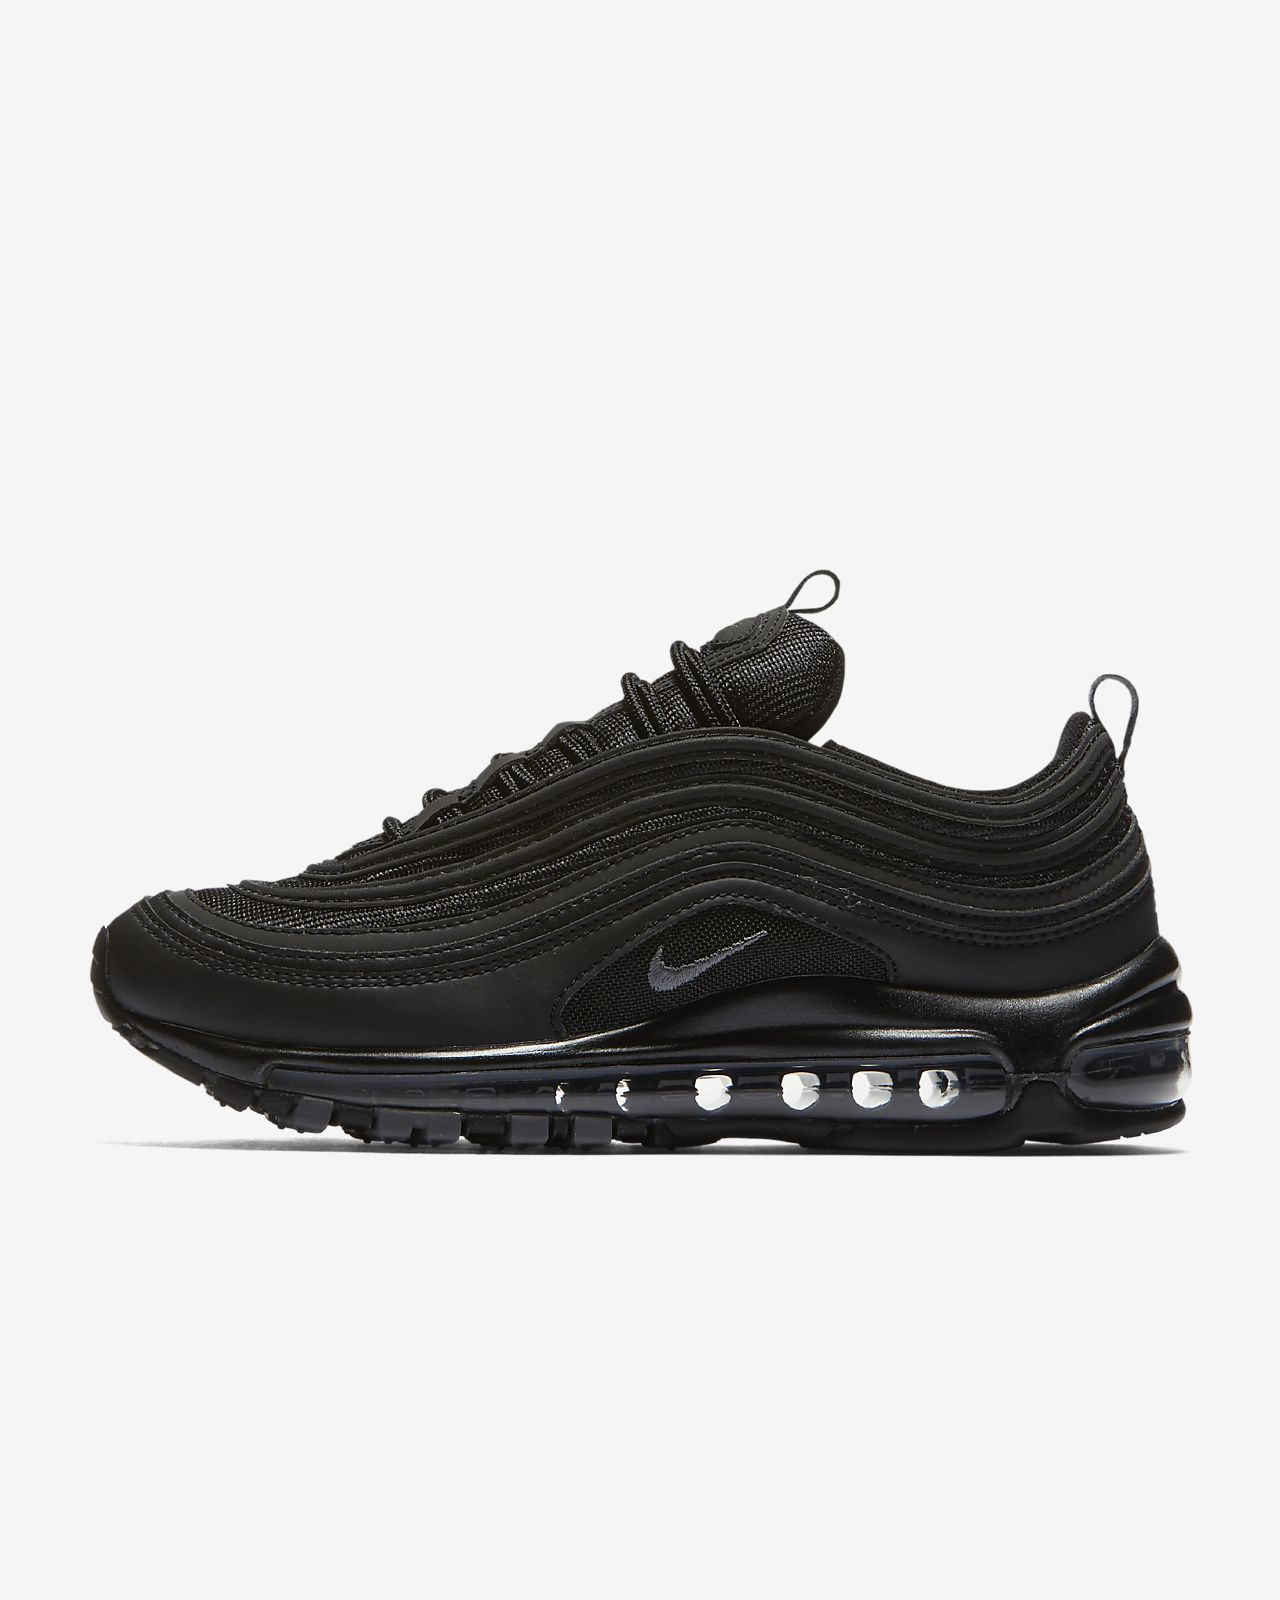 19 Best nike air max 97 premium images | Cheap nike air max